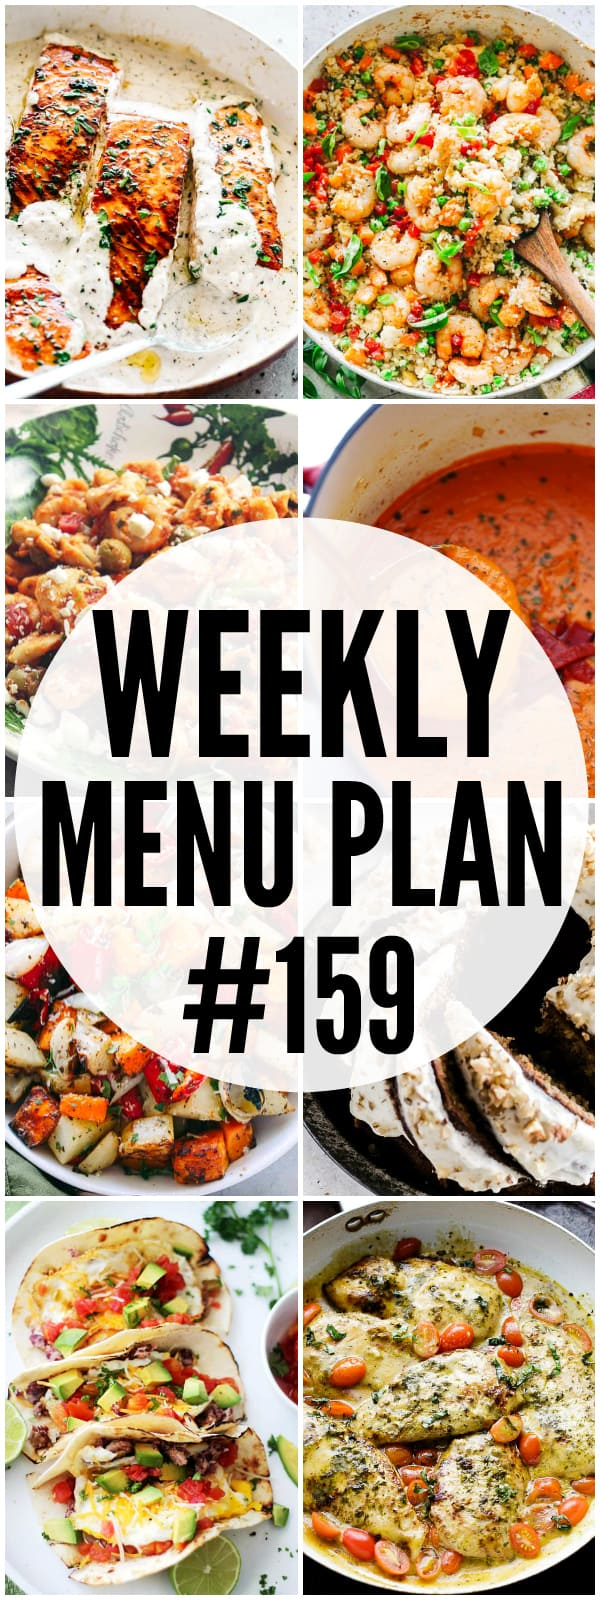 WEEKLY MENU PLAN (#159) - A delicious collection of dinner, side dish and dessert recipes to help you plan your weekly menu and make life easier for you!